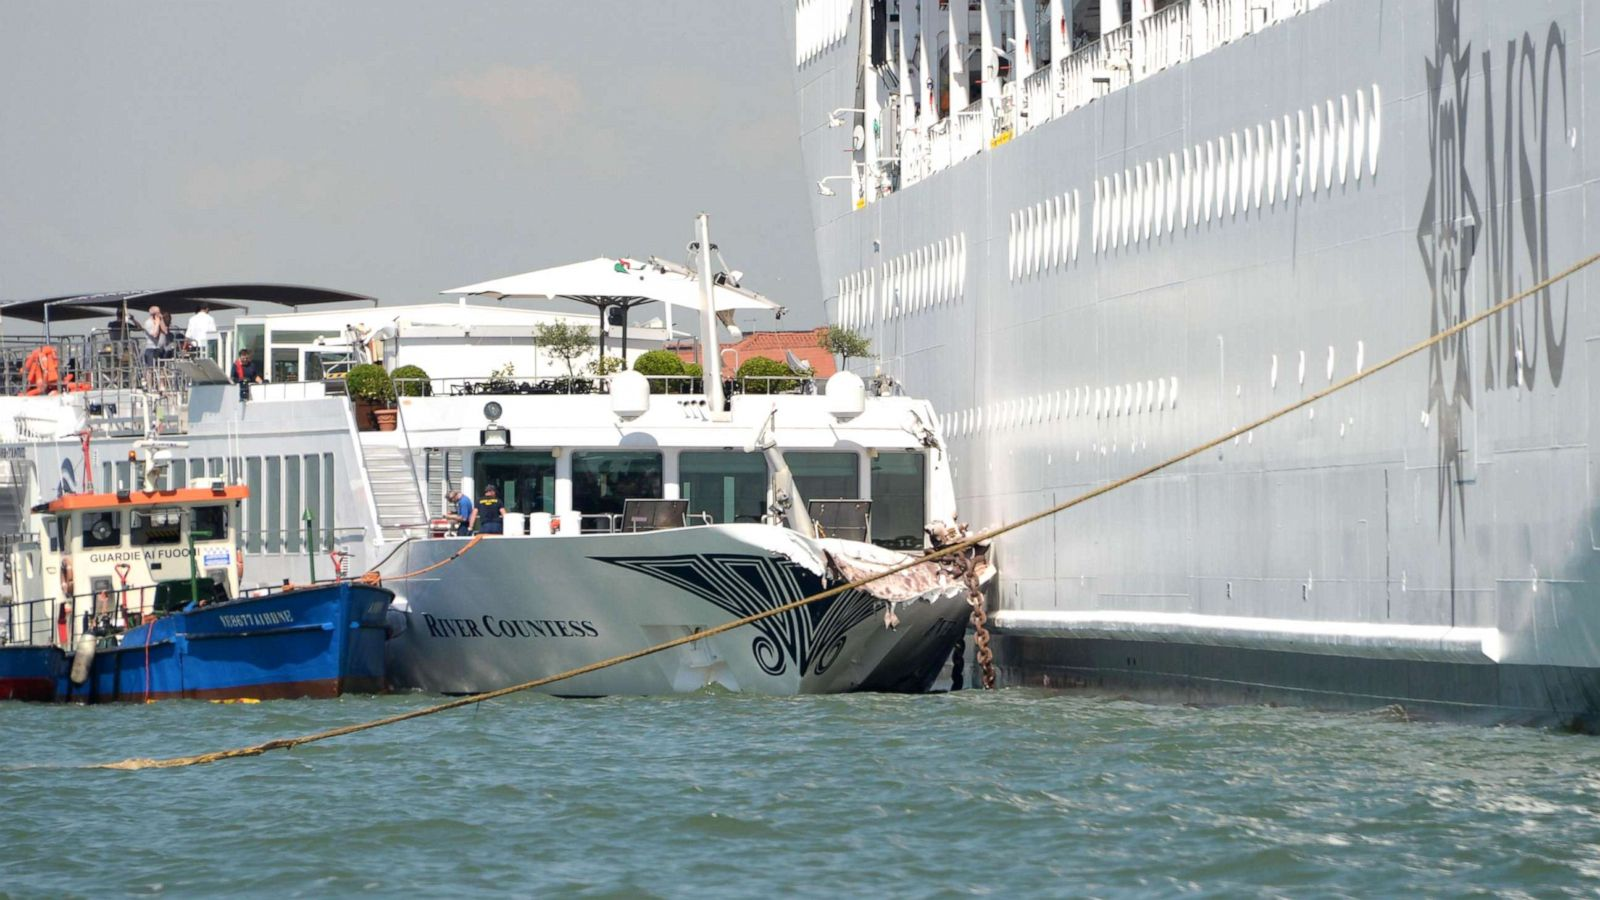 Out-of-control cruise ship crashes into tourist boat on busy